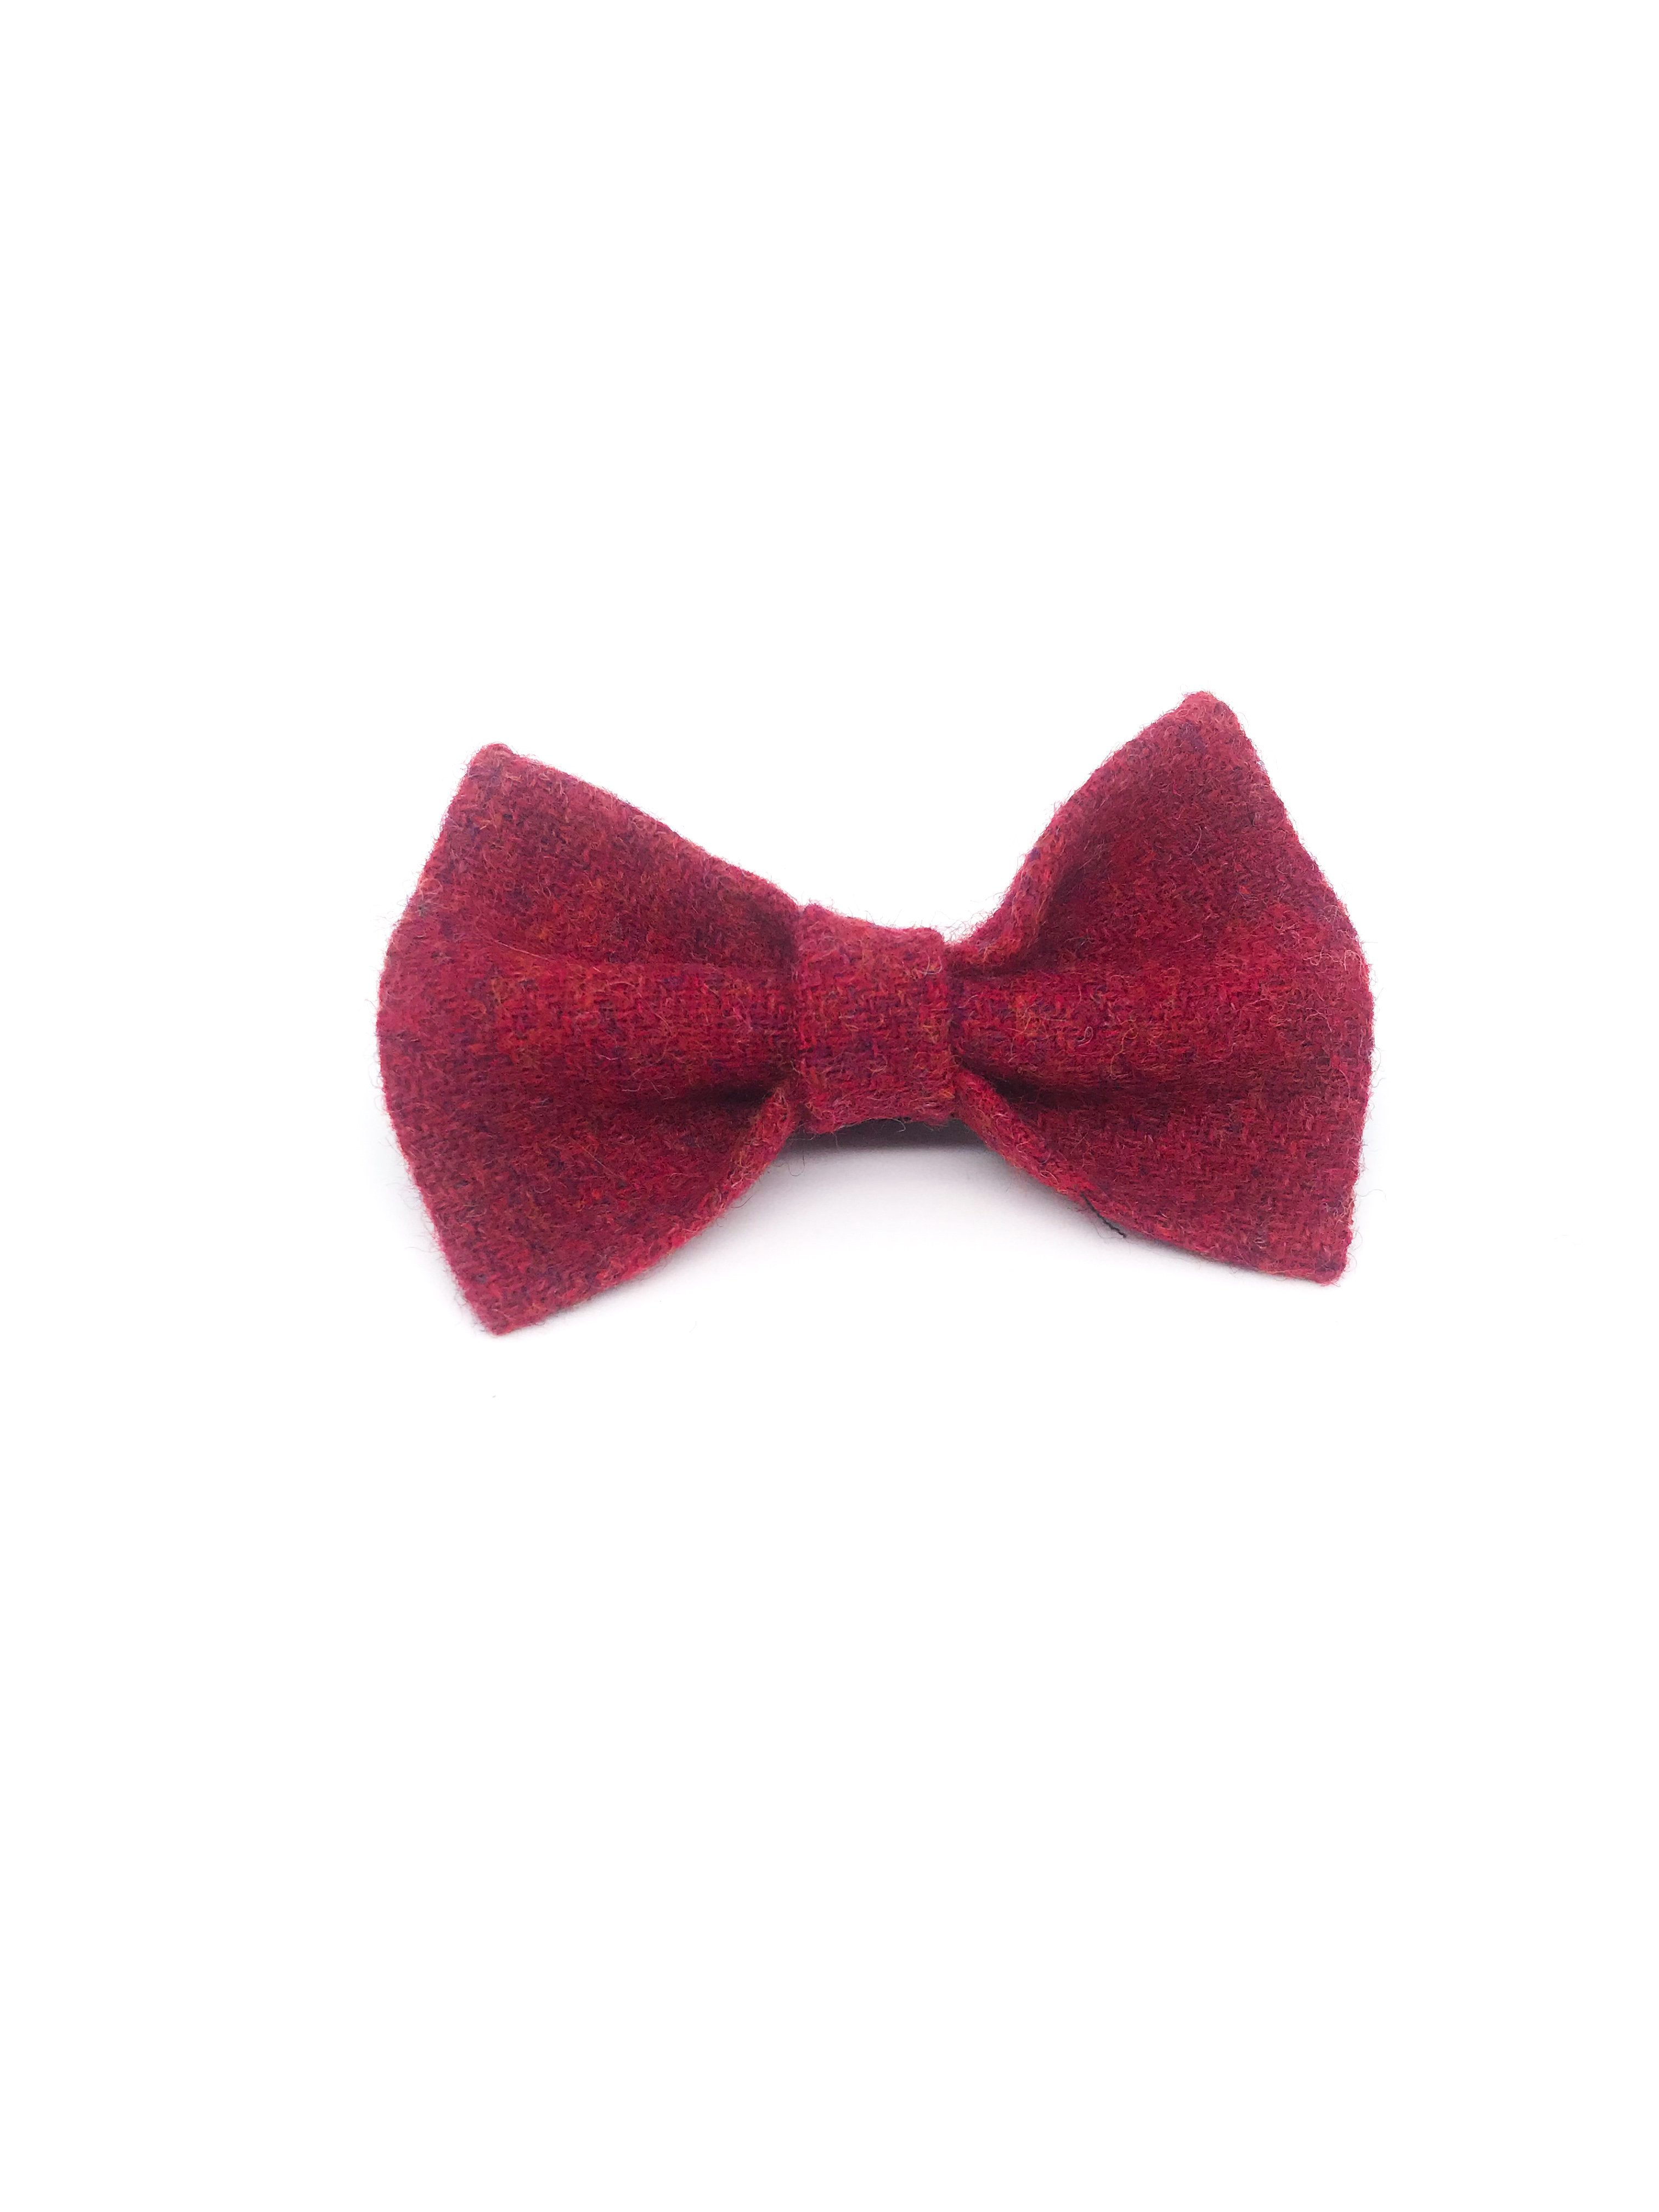 Bow Tie (Red) - MIMI+MARTHA